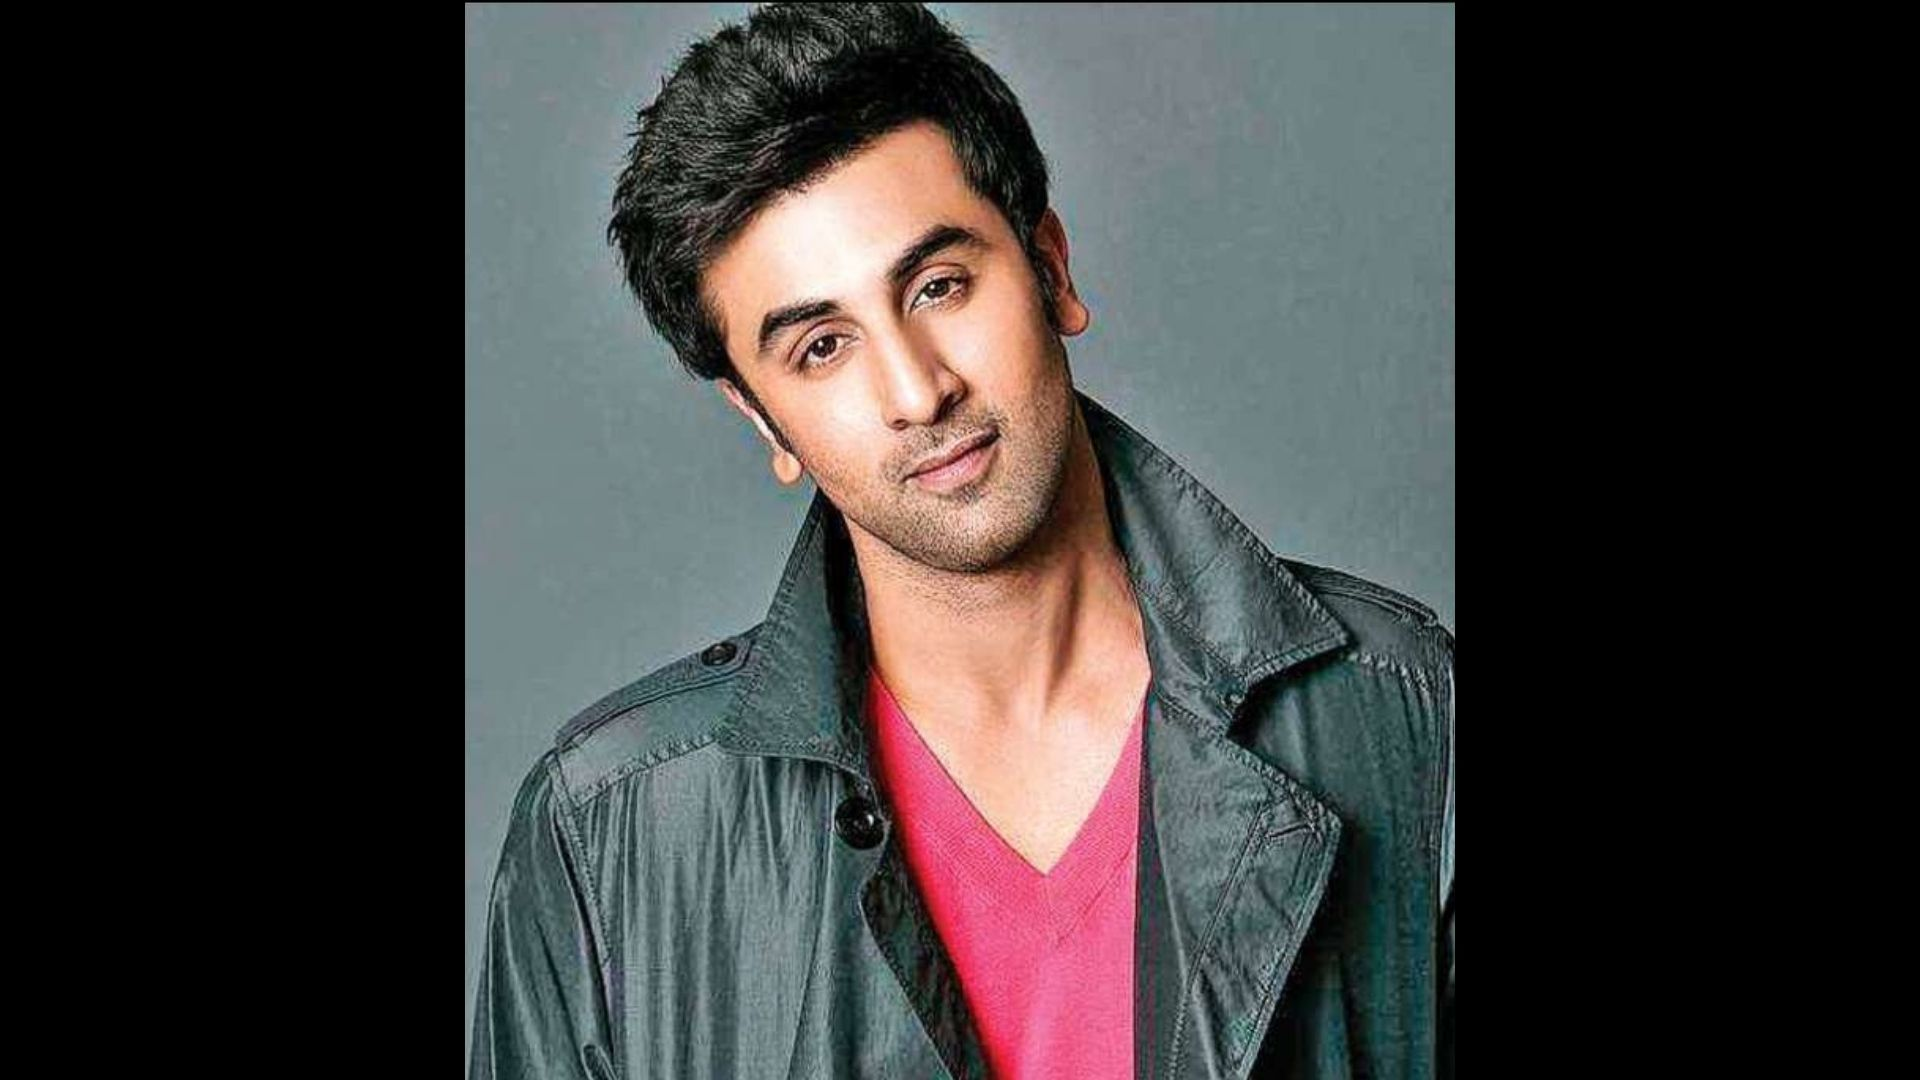 Ranbir Kapoor Shoots Party Song For Luv Ranjan's Flick With 500 Dancers Since COVID-19 Rules Lifted – REPORTS